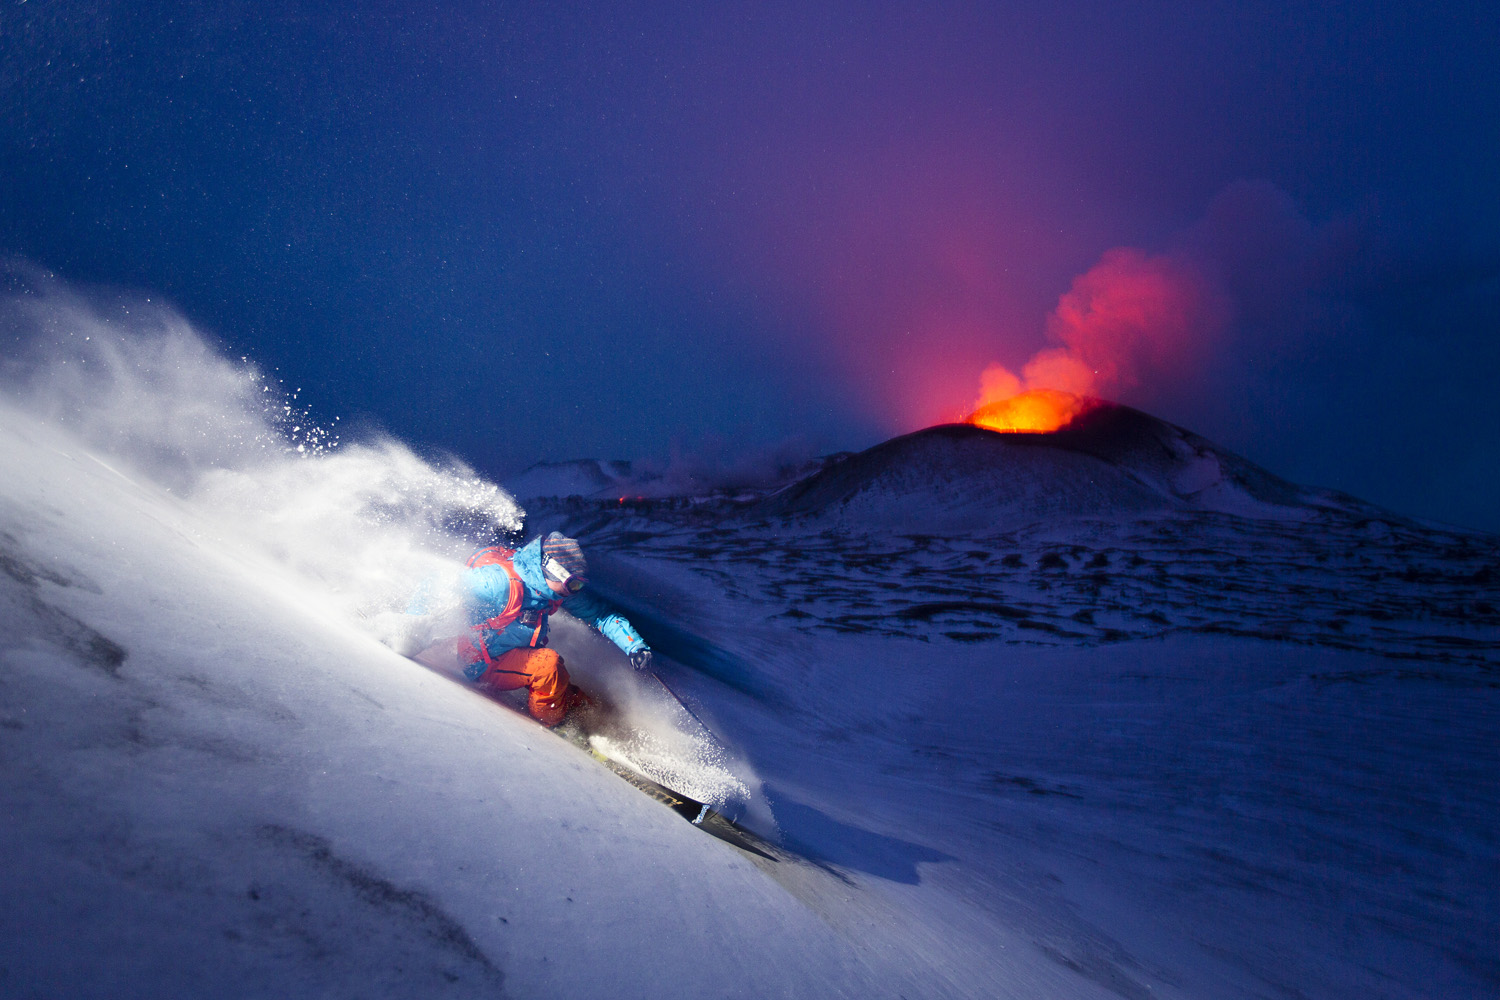 Photographer Fredrik Schenholm: Volcanic Skiing: A Photo 5 Years In The Making